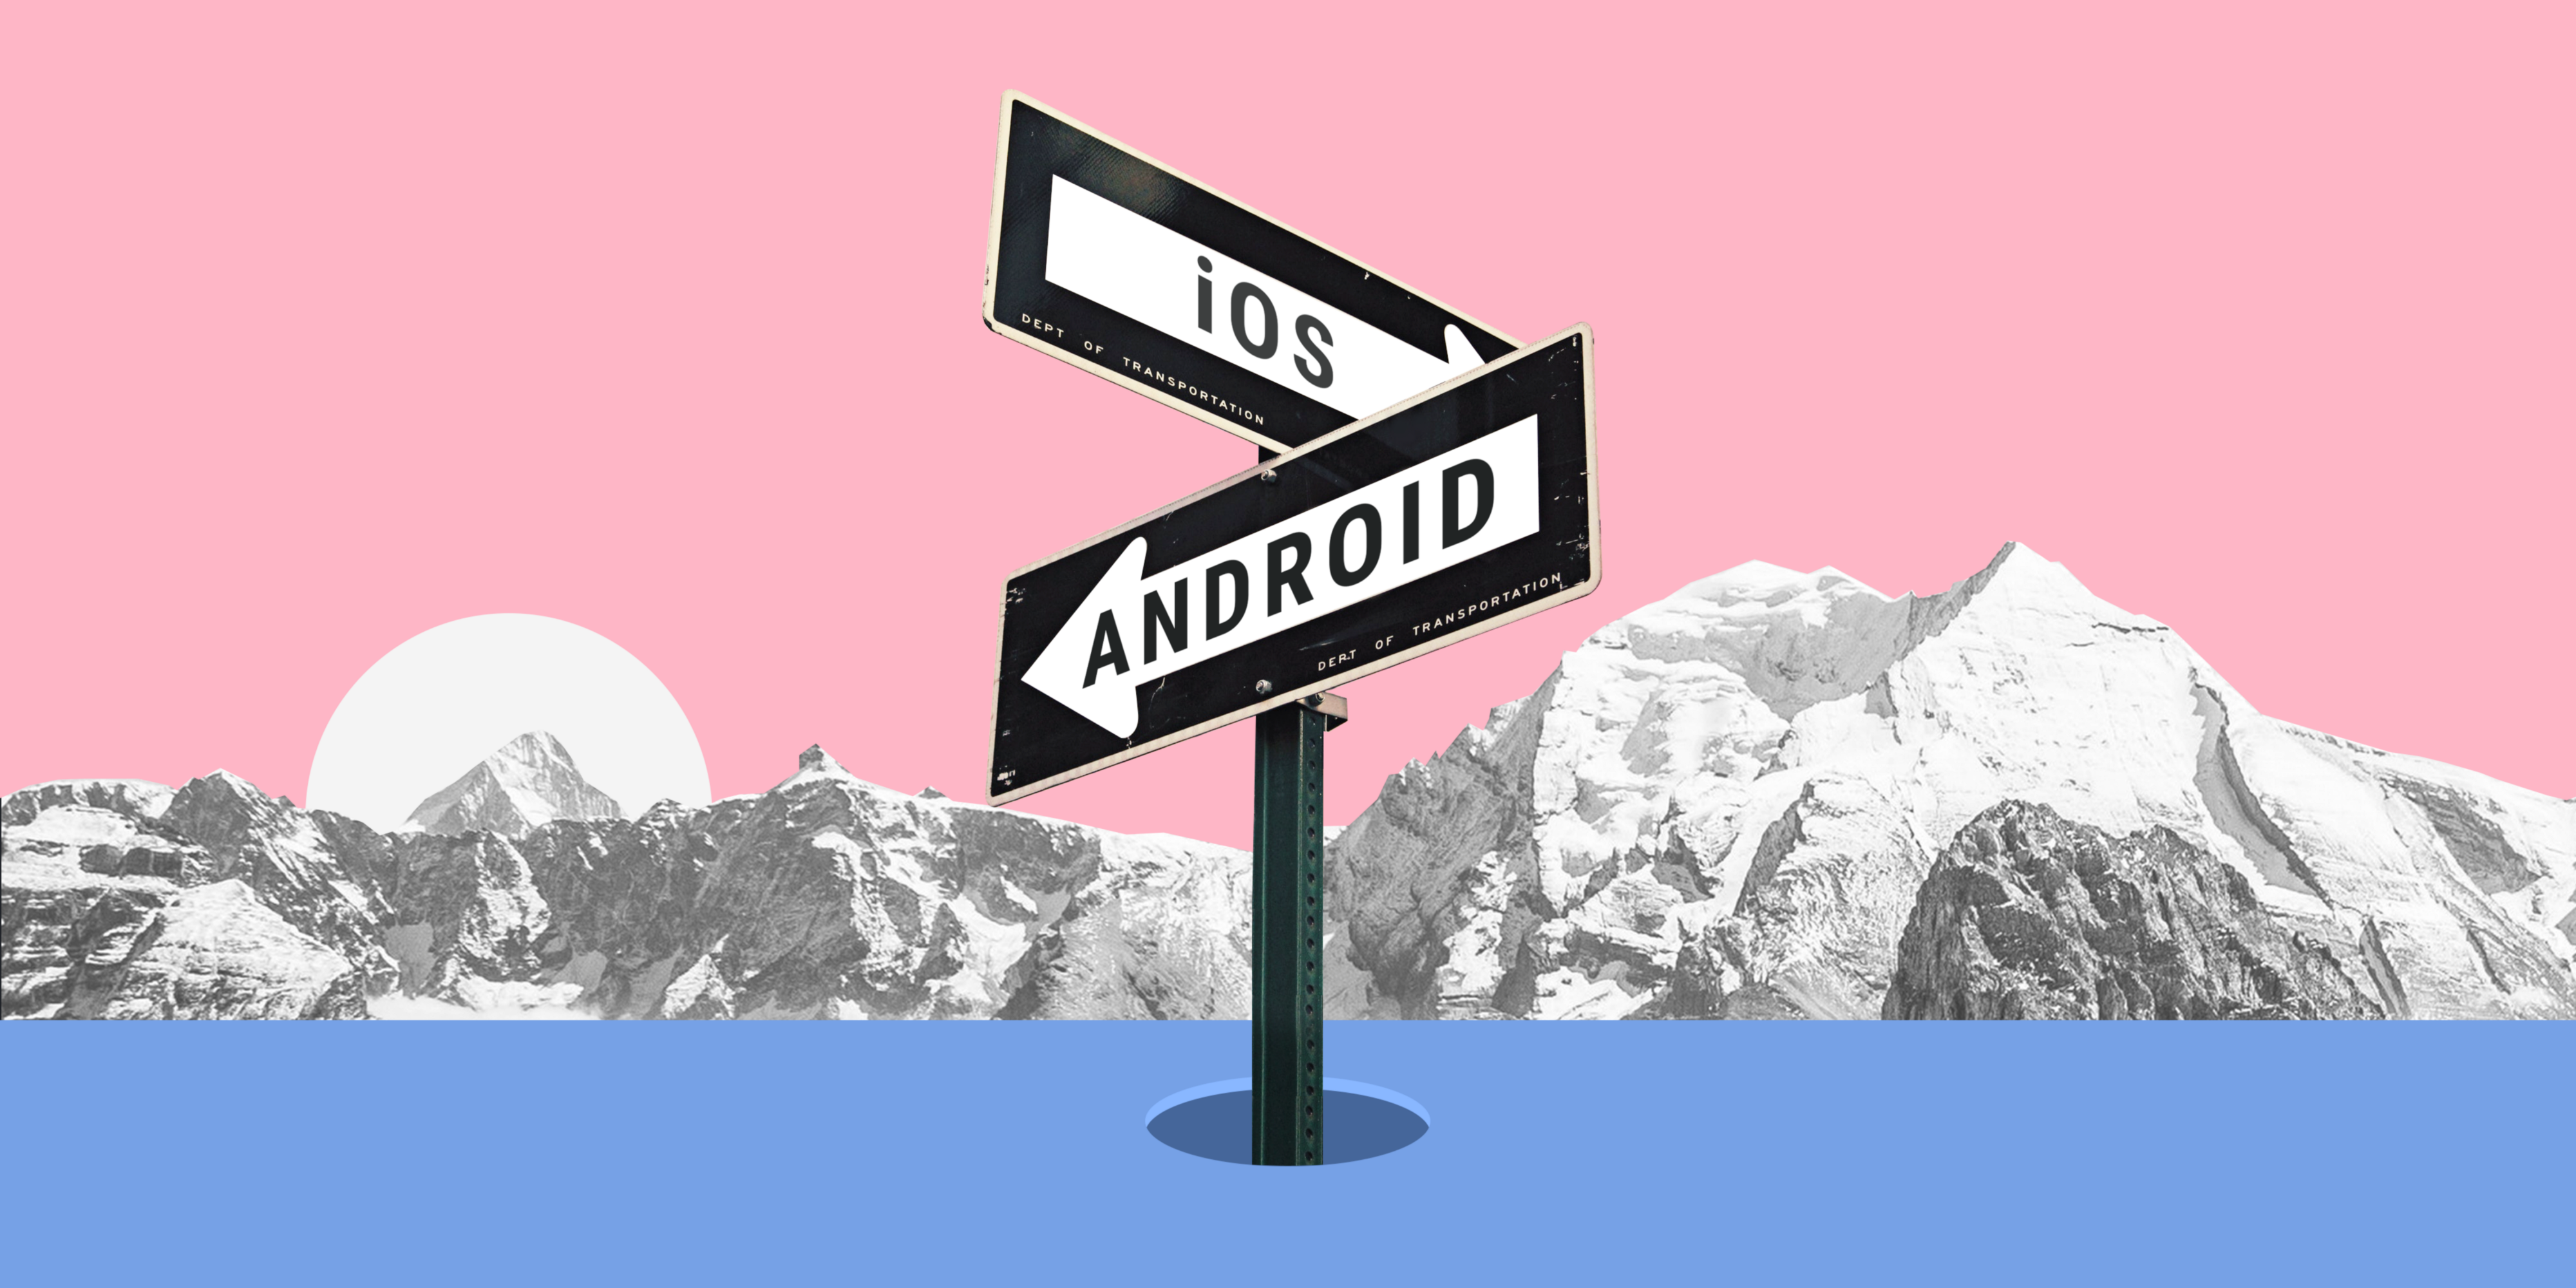 A Better Way >> When Android Is A Better Way To Start The Startup Medium